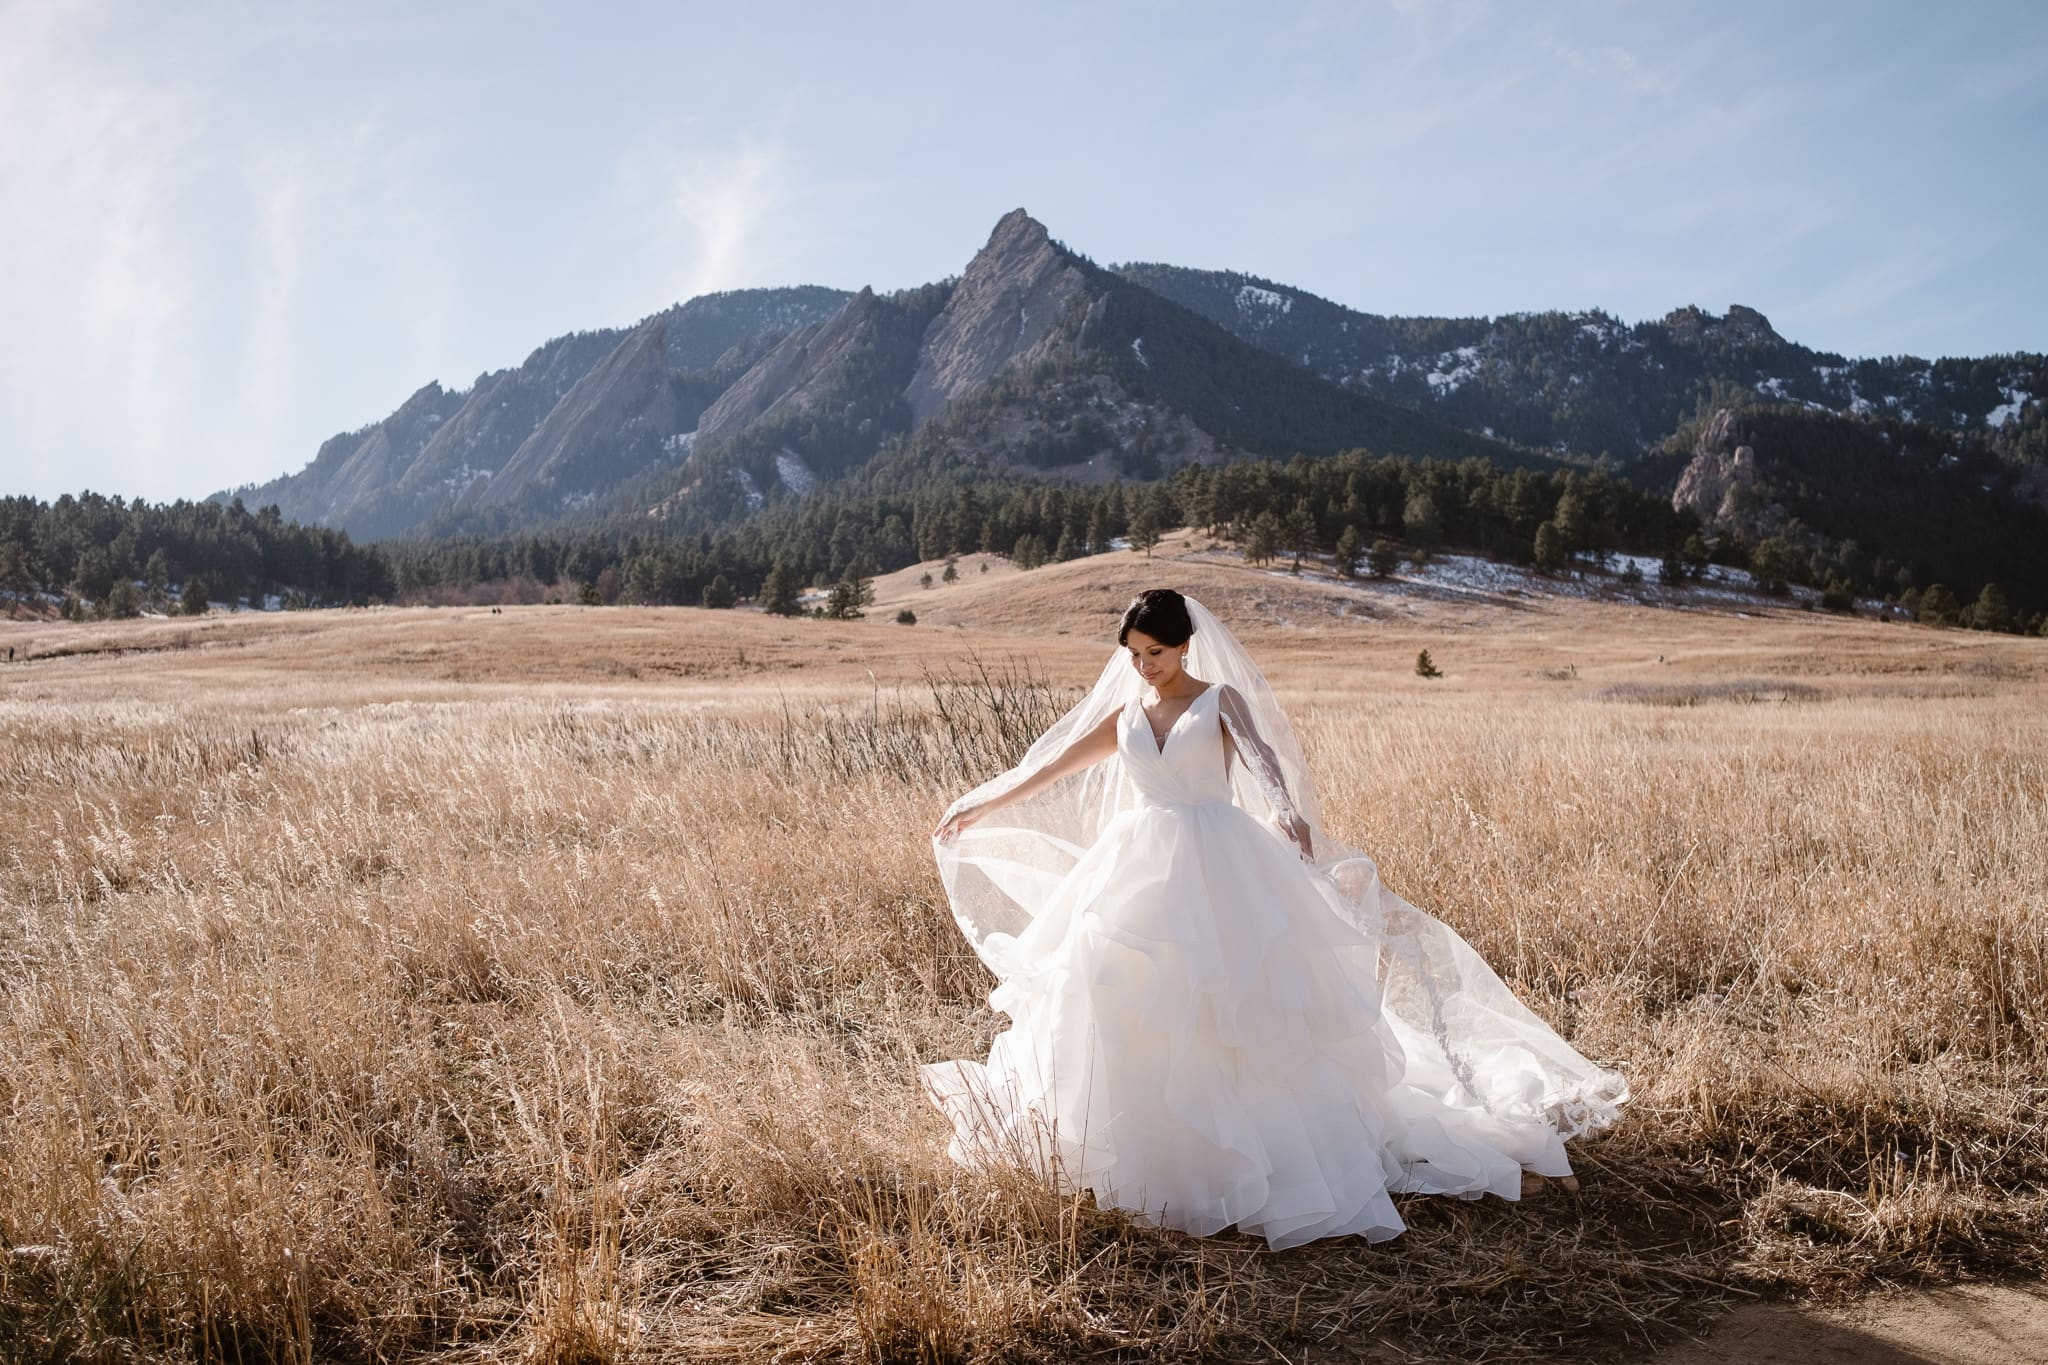 Bride portraits at Chautauqua with views of the Flatirons, Boulder wedding photographer, Colorado wedding photographer, St Julien wedding with mountain wedding photos